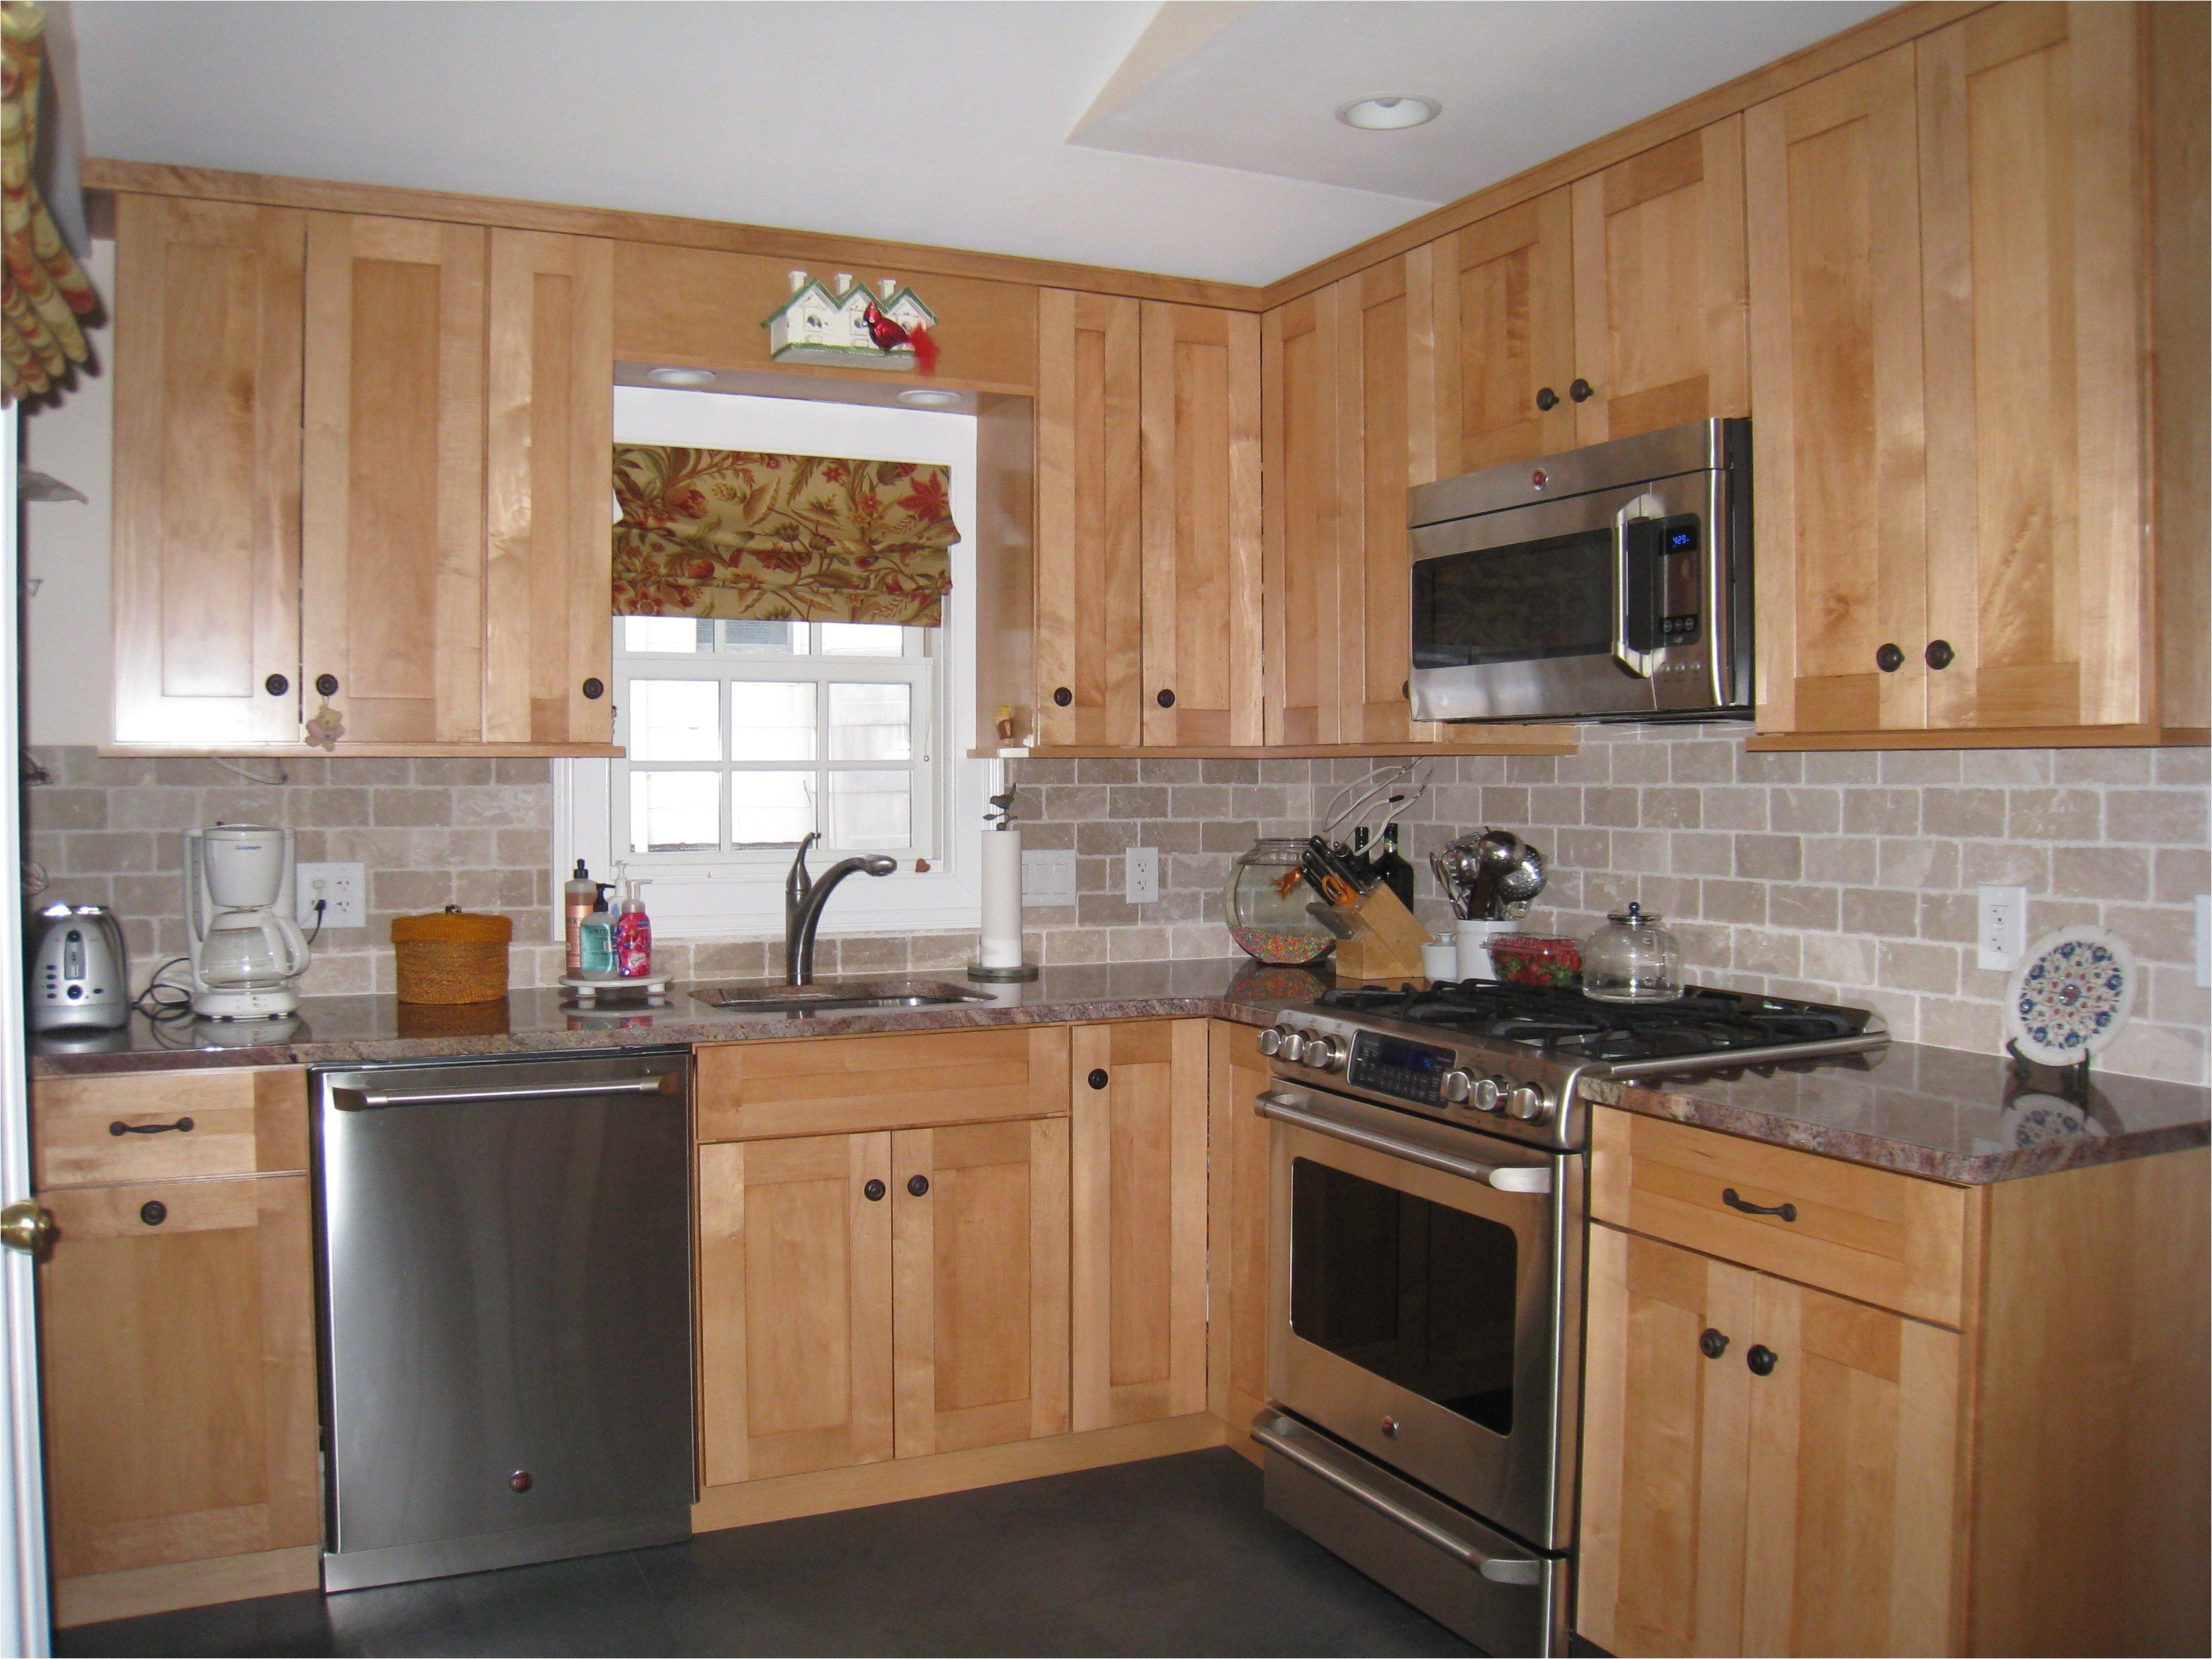 Backsplash Ideas for Black Granite Countertops and Maple ... on Maple Cabinets With Black Granite Countertops  id=57583